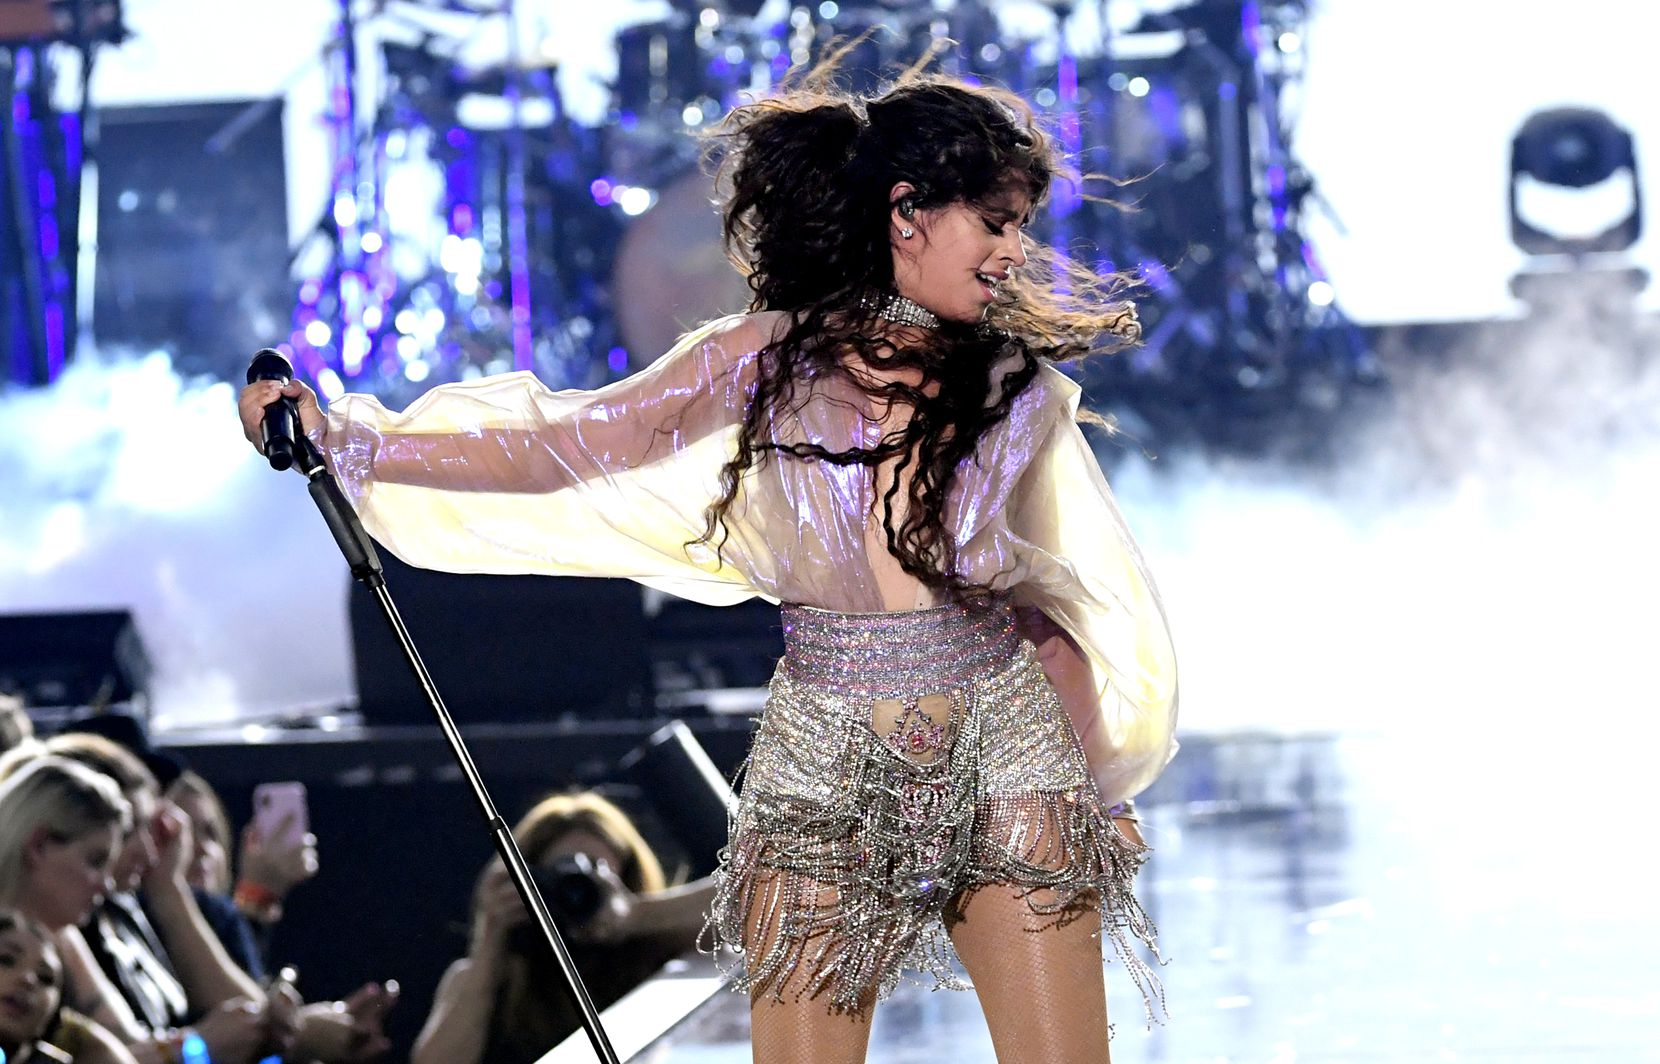 Camila Cabello performs onstage during the 2019 iHeartRadio Music Festival at T-Mobile Arena on Sept. 20, 2019 in Las Vegas.